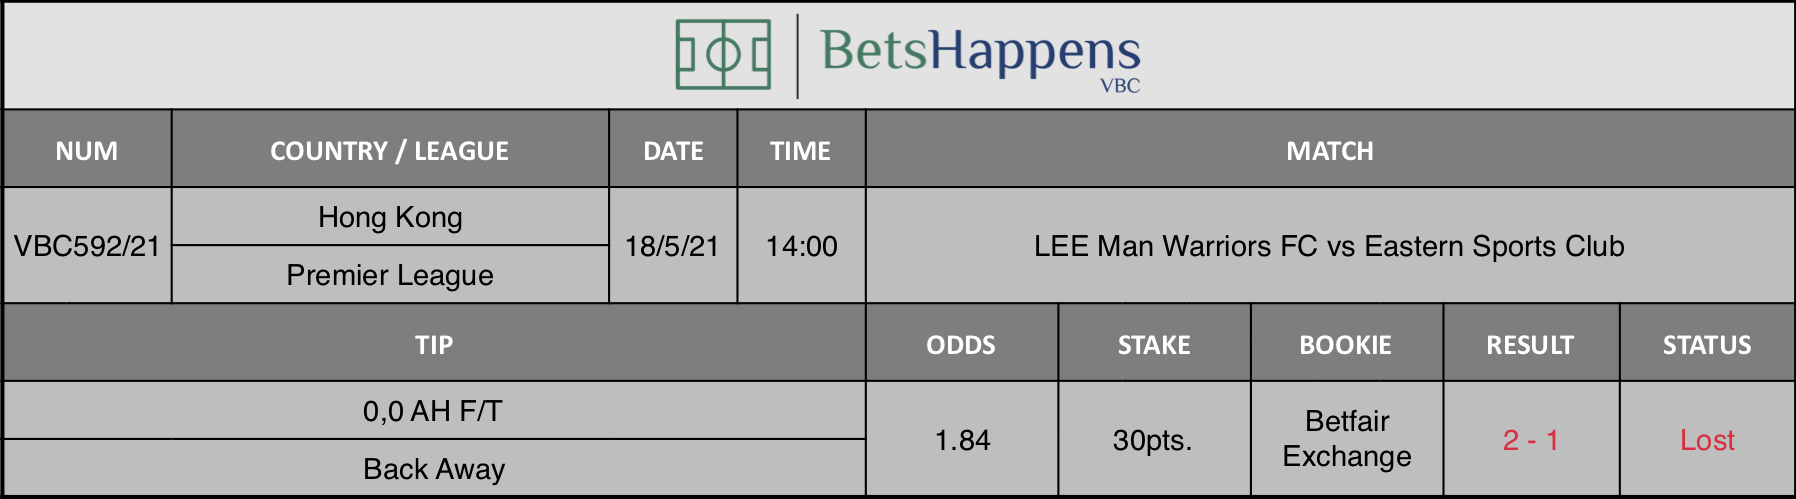 Results of our tip for the LEE Man Warriors FC vs Eastern Sports Club match where 0,0 AH F/T Back Away is recommended.